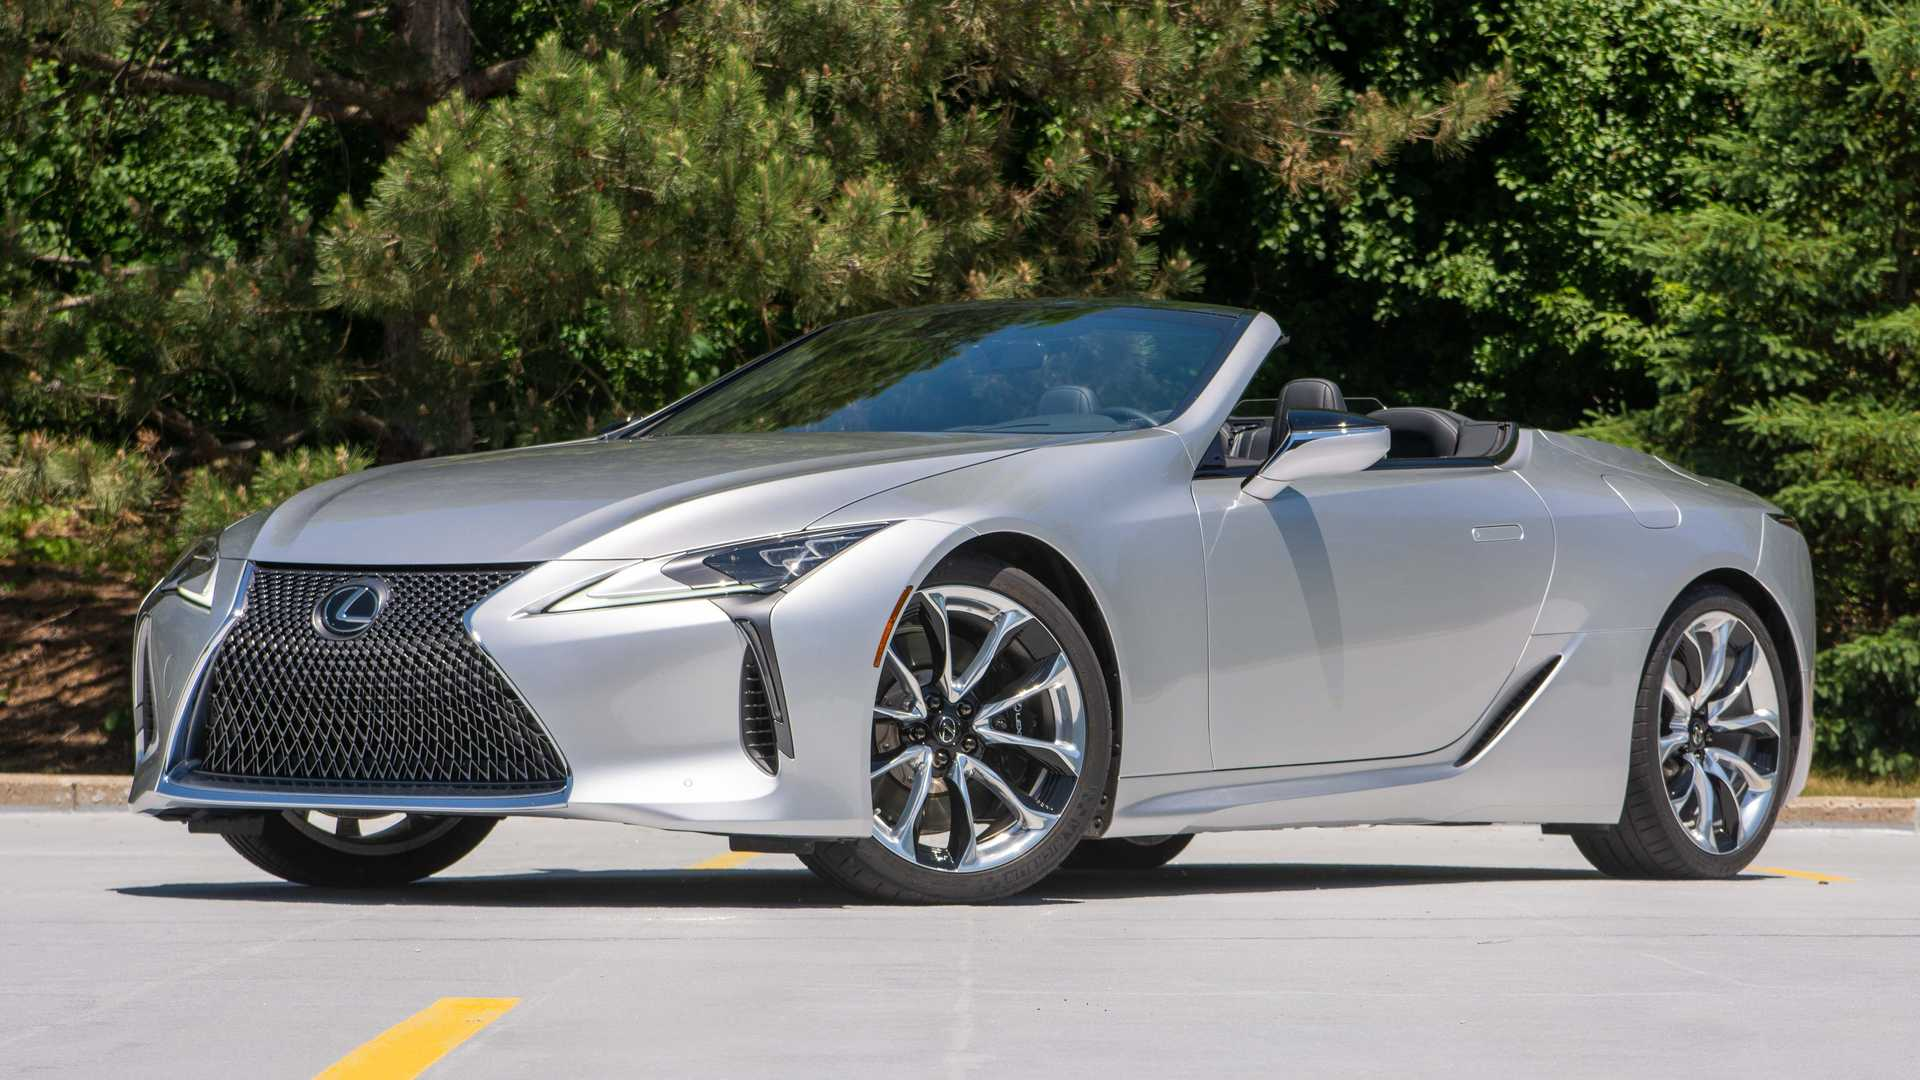 2021 Lexus Lc 500 Convertible First Drive Review It S A Natural